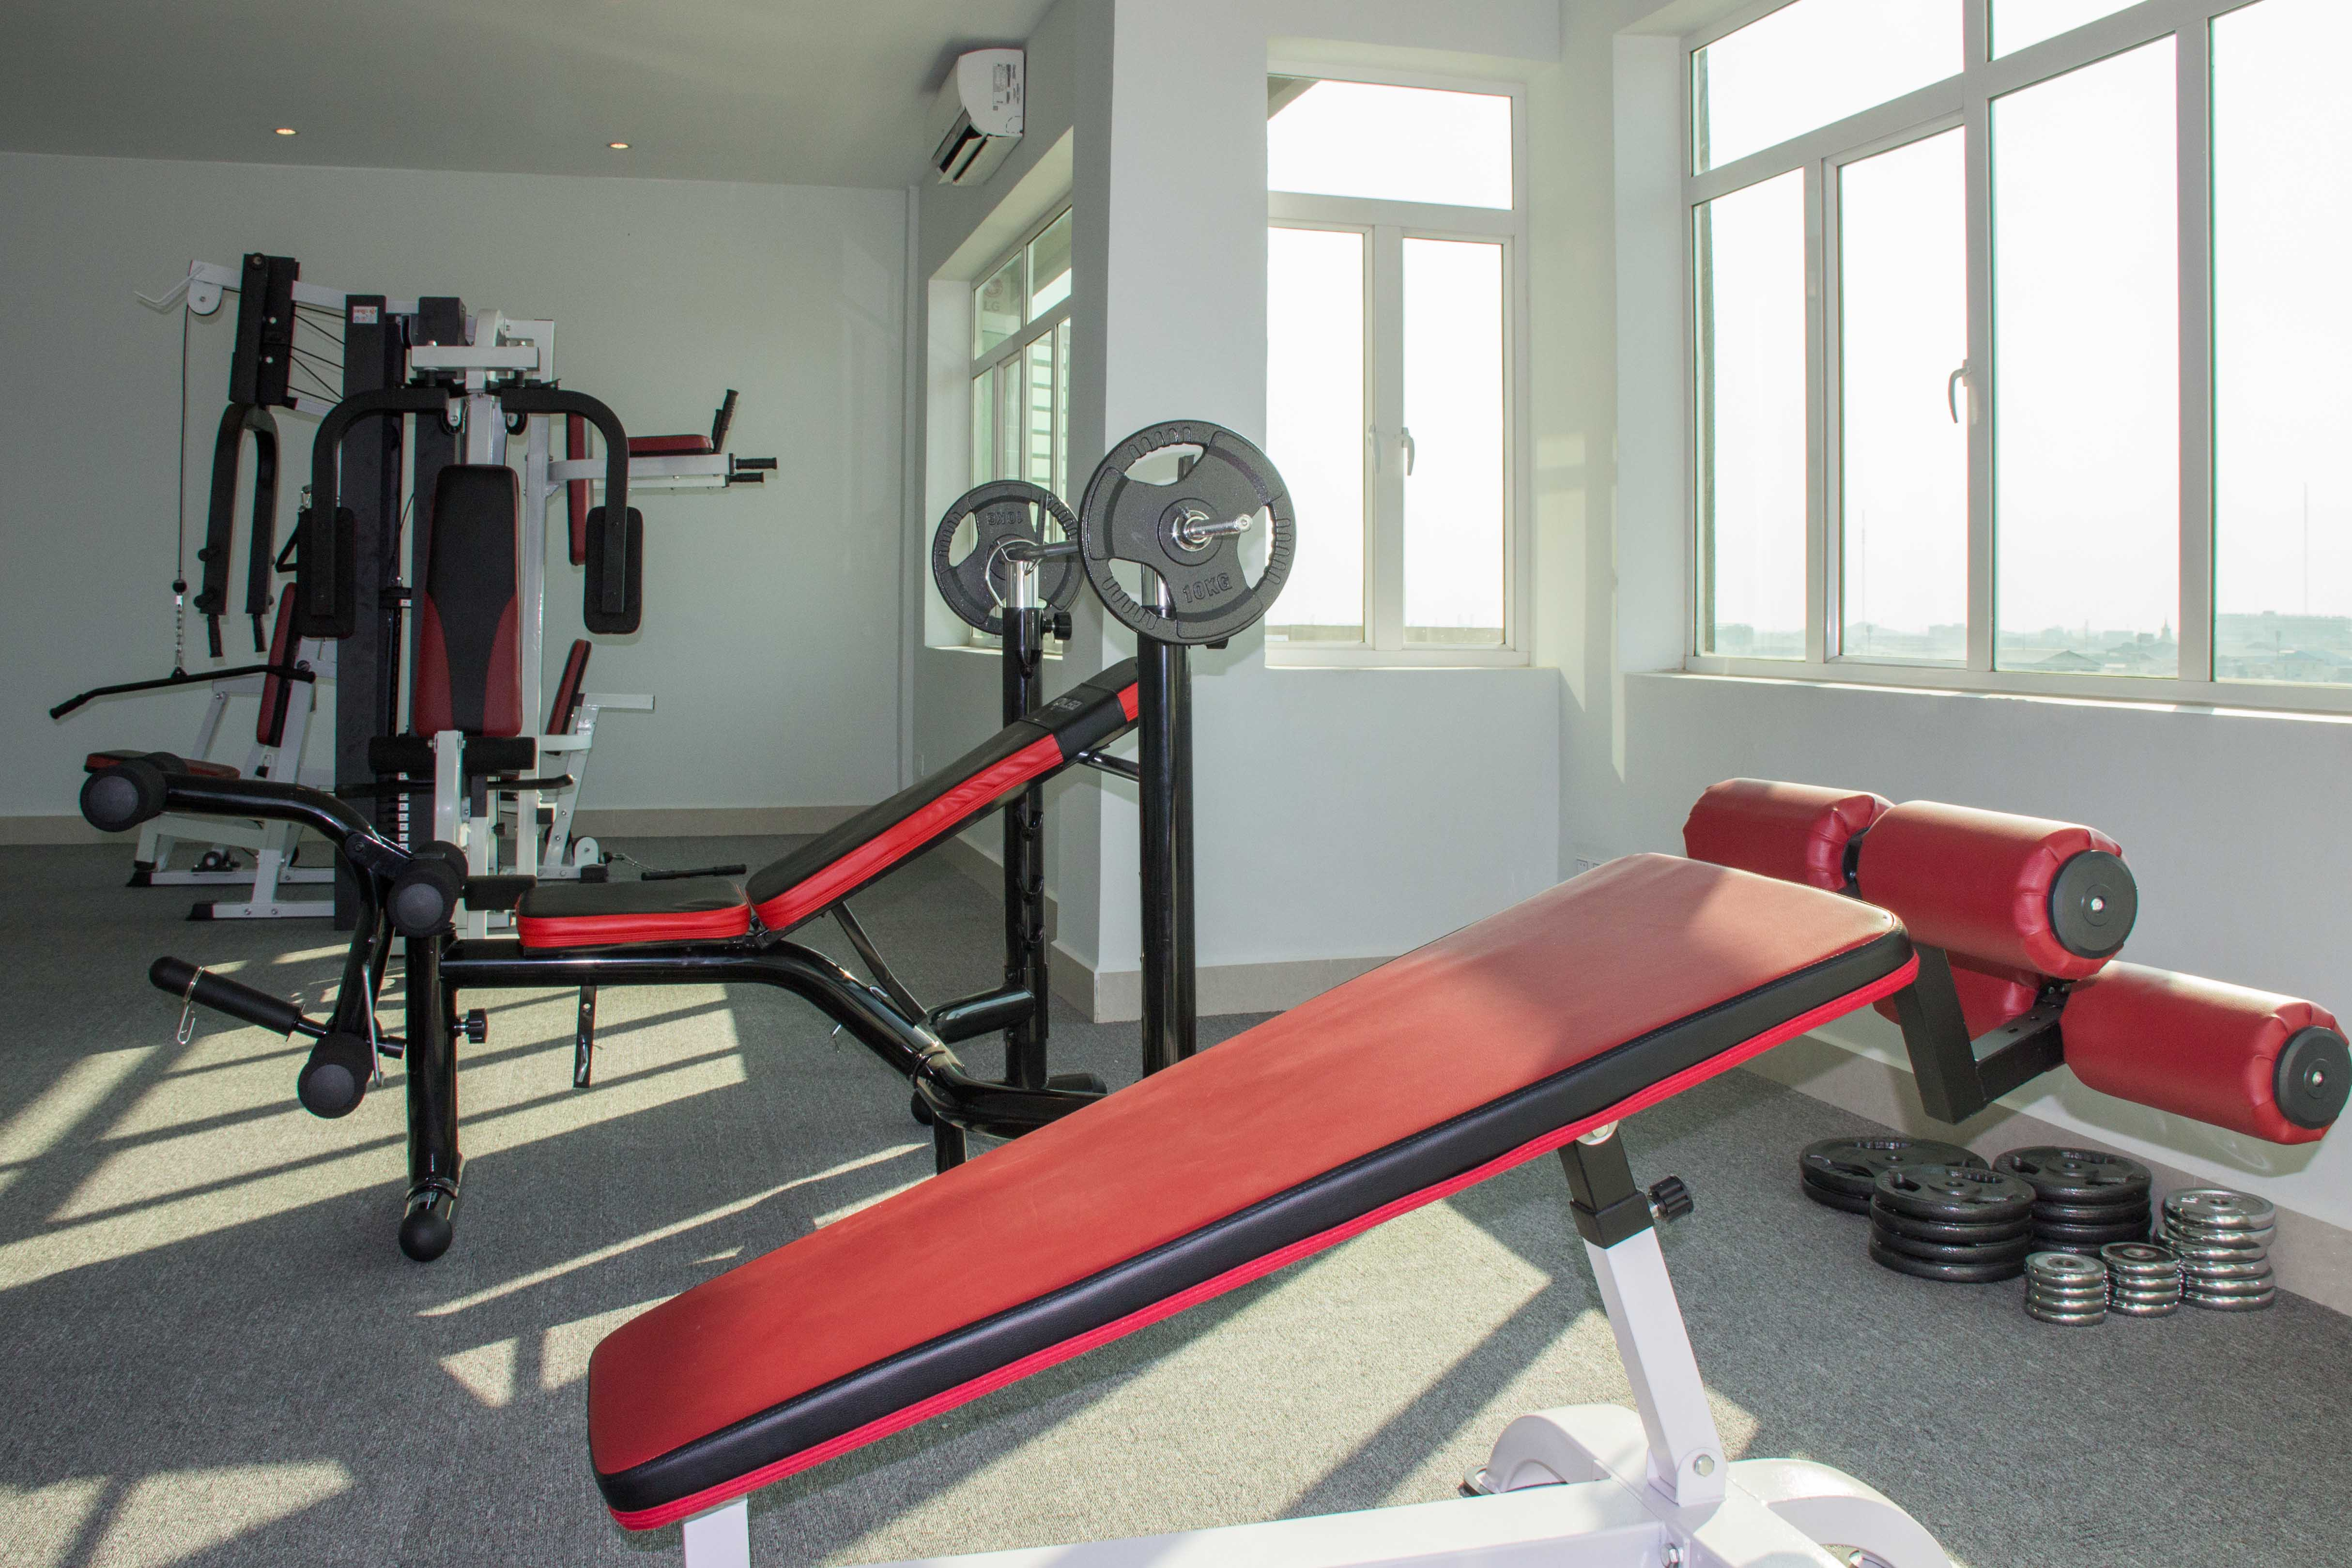 Gym | phnom penh | weekly